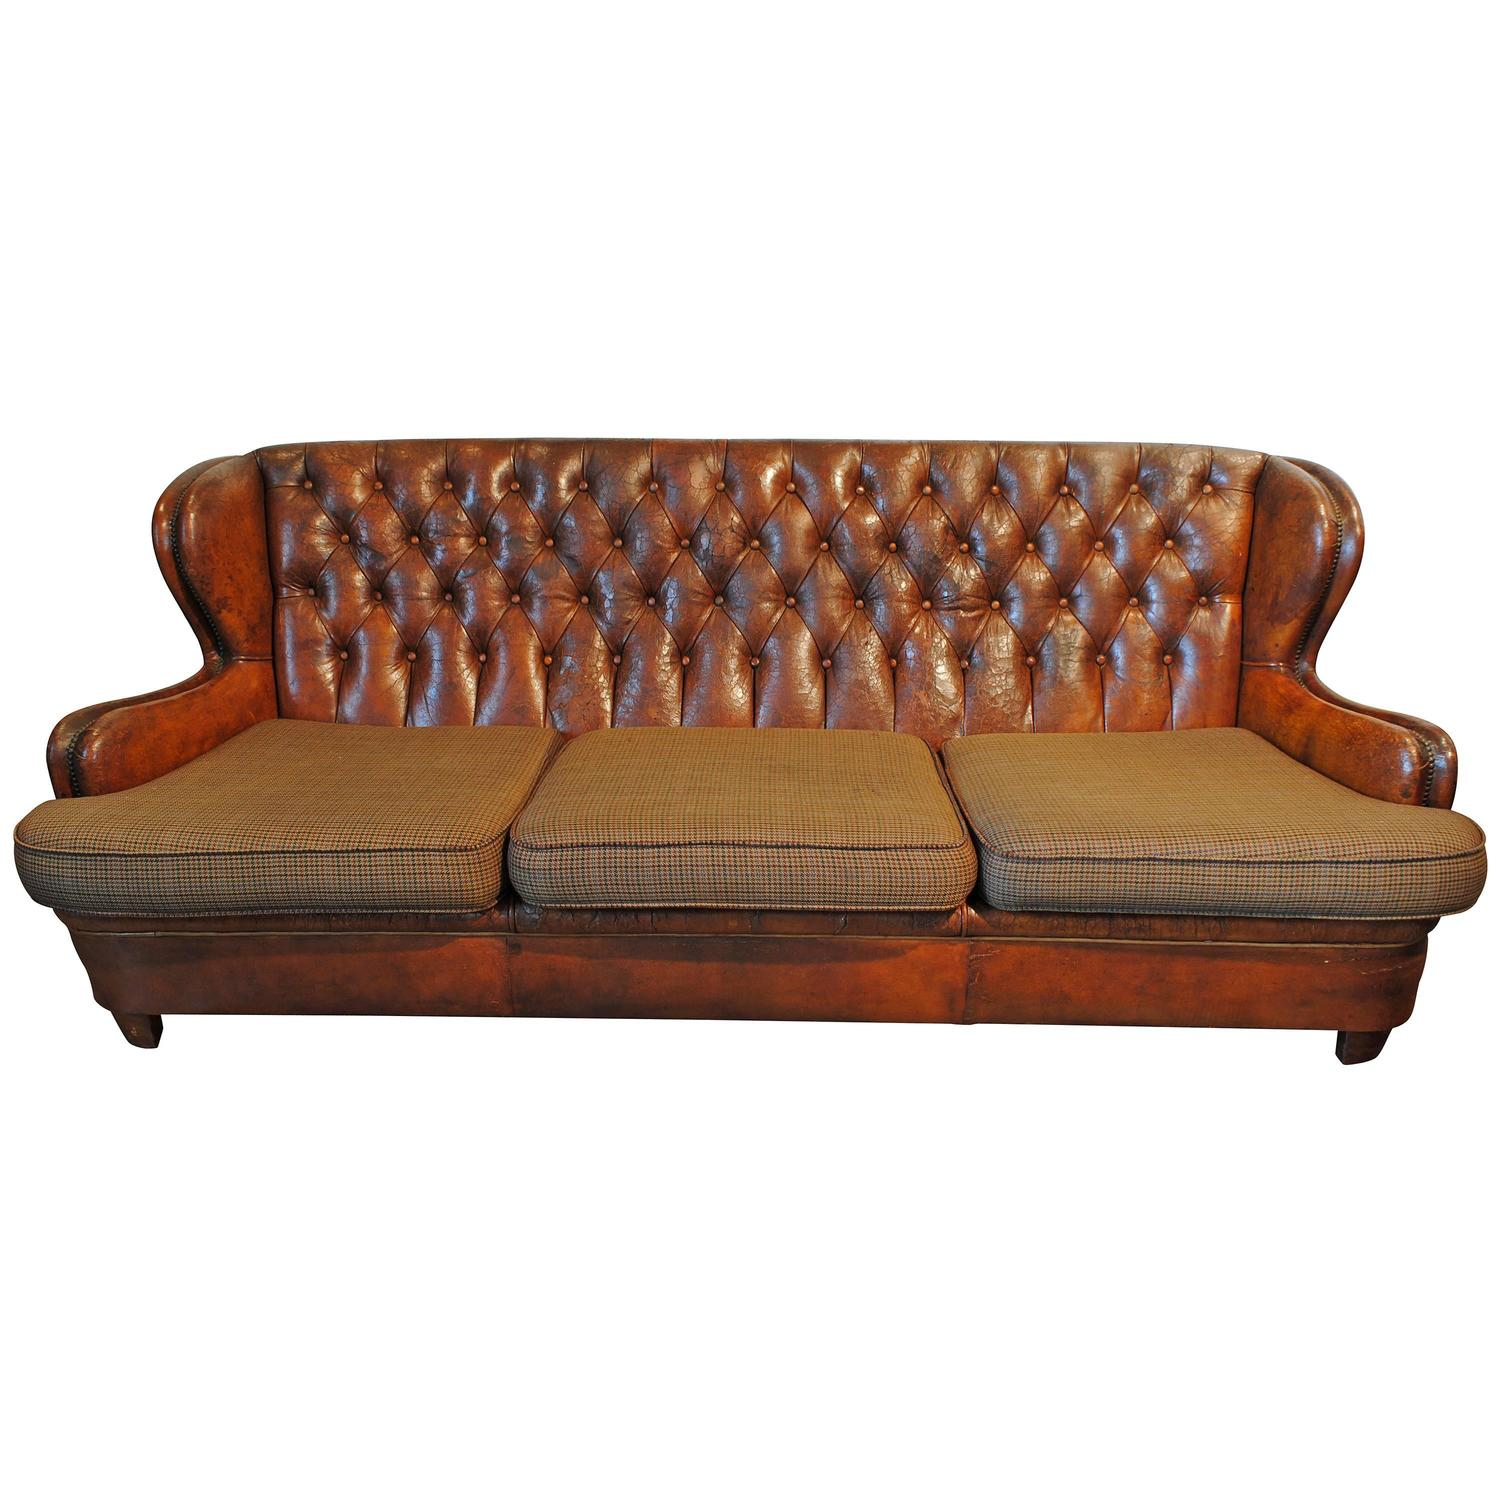 Tufted Leather Sofas For Sale Florence Knoll